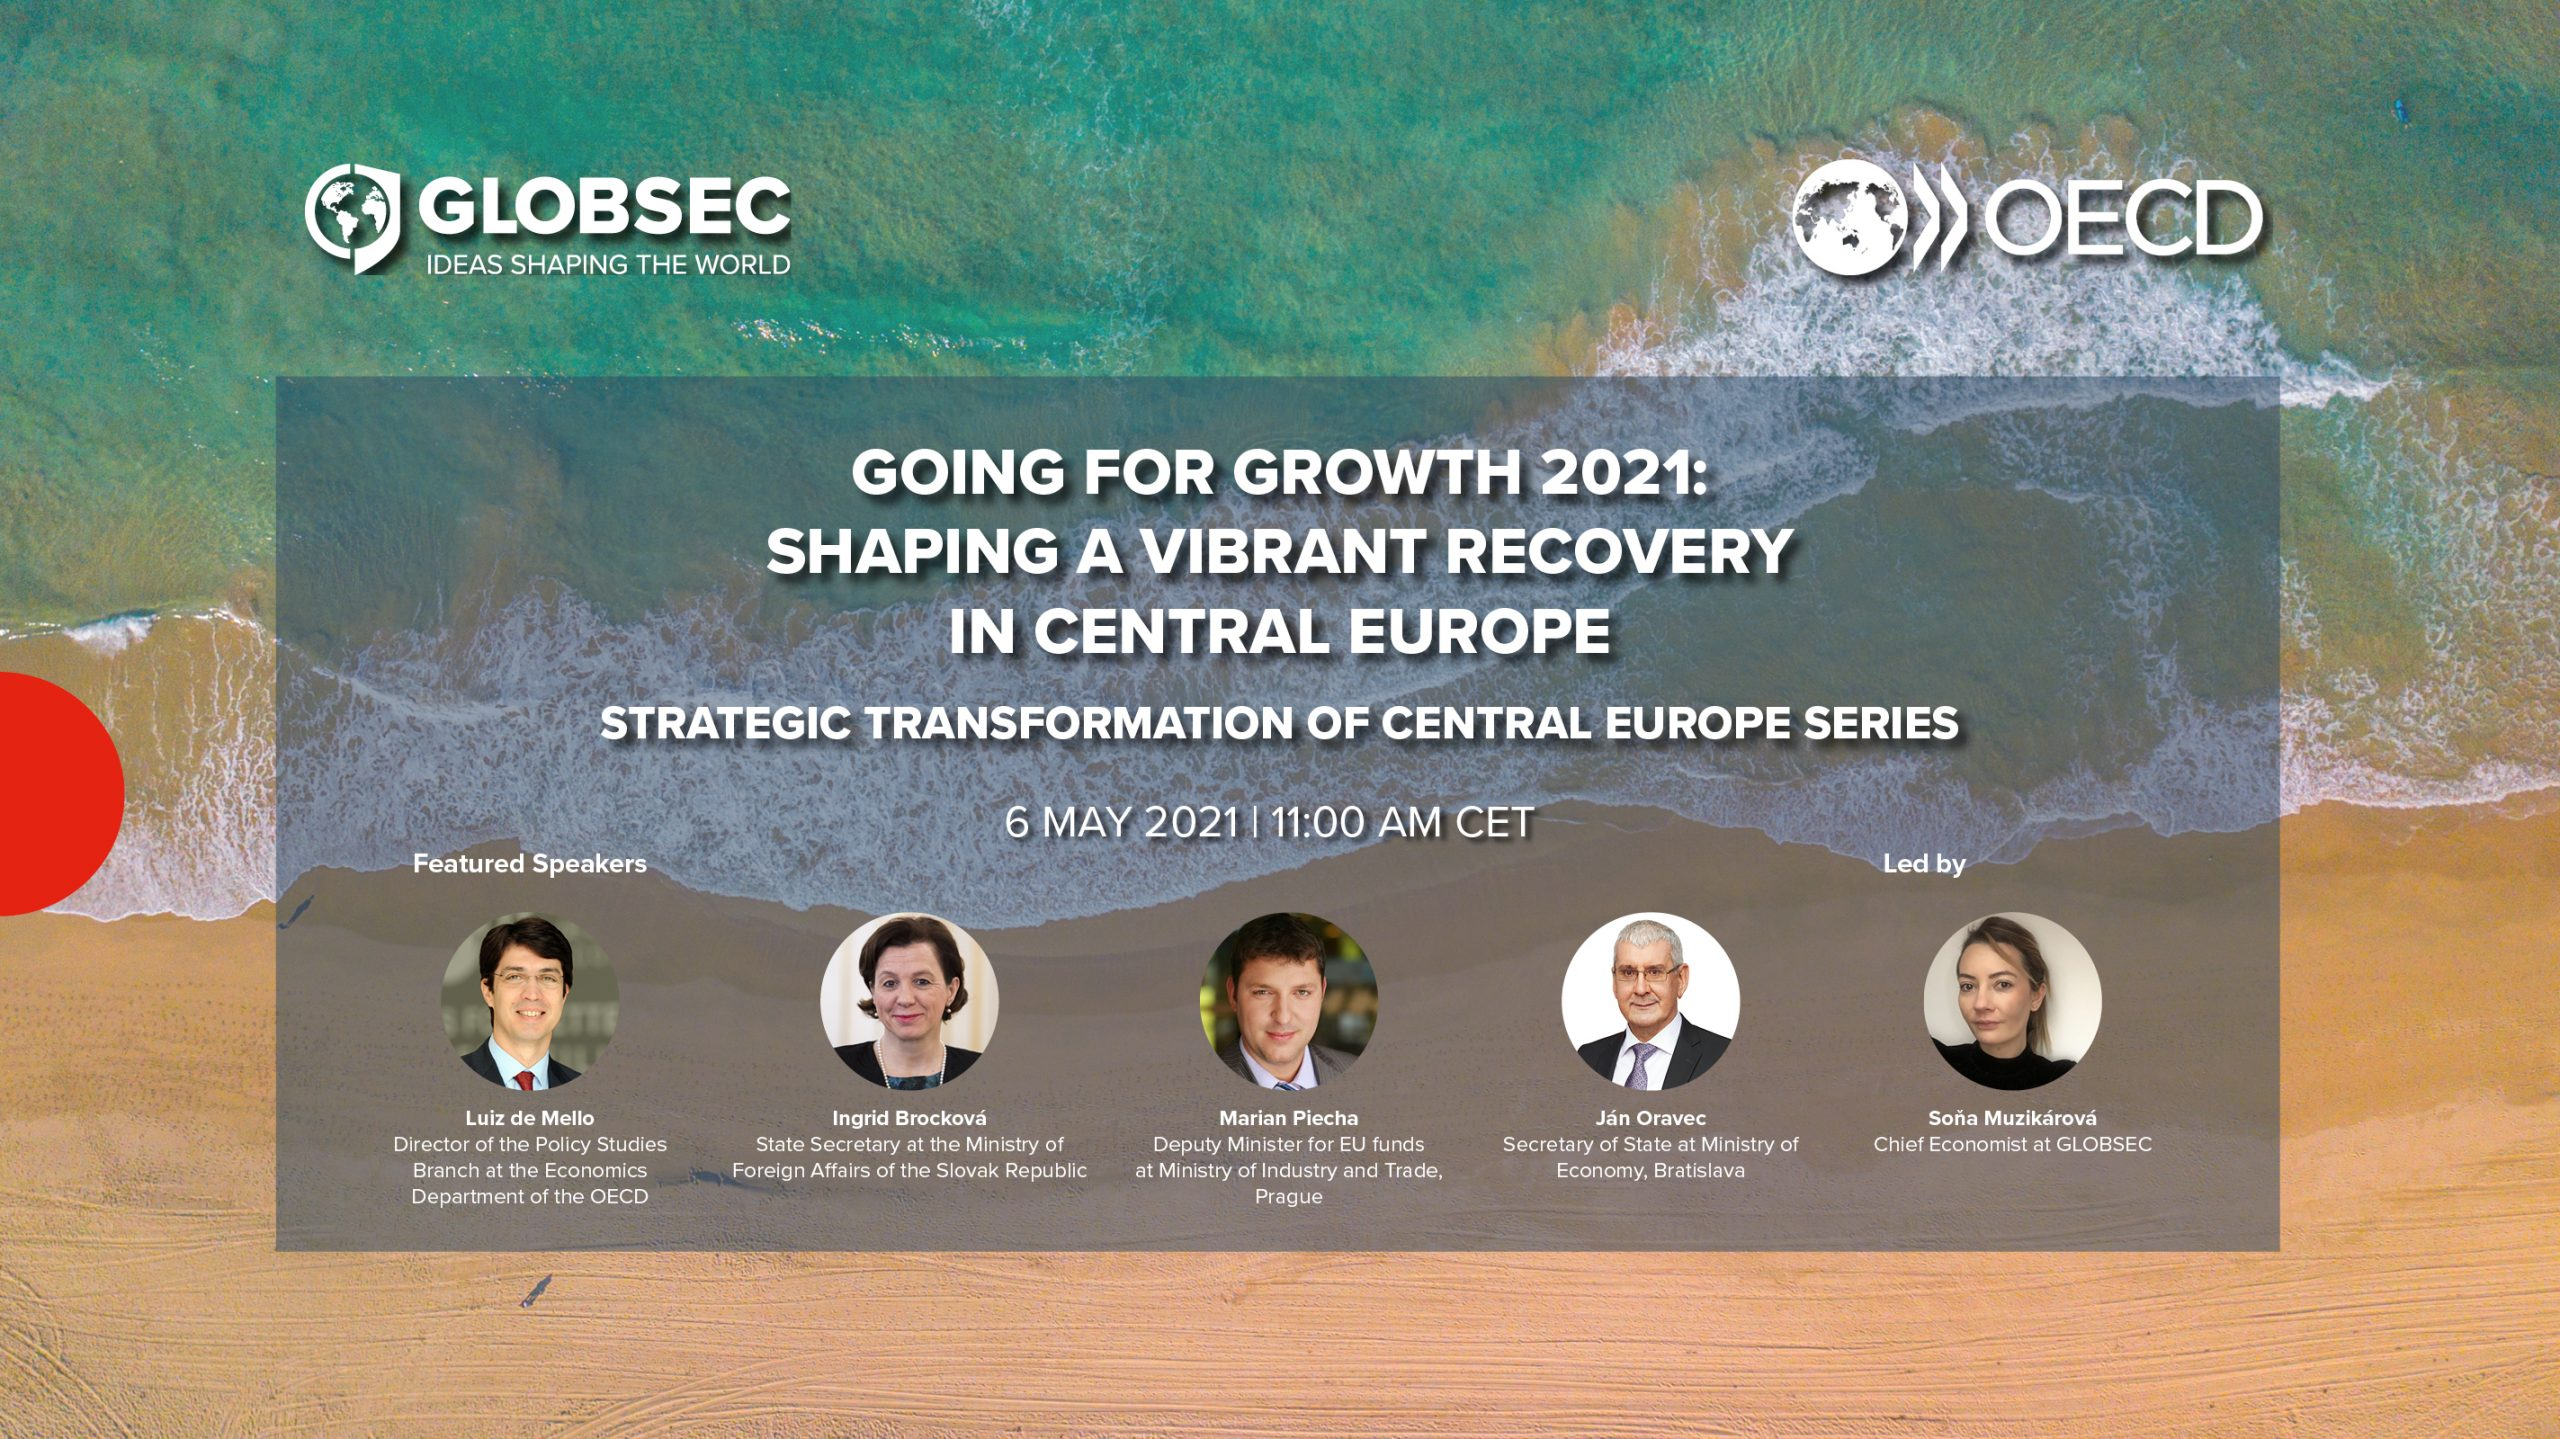 Going for Growth in Central Europe